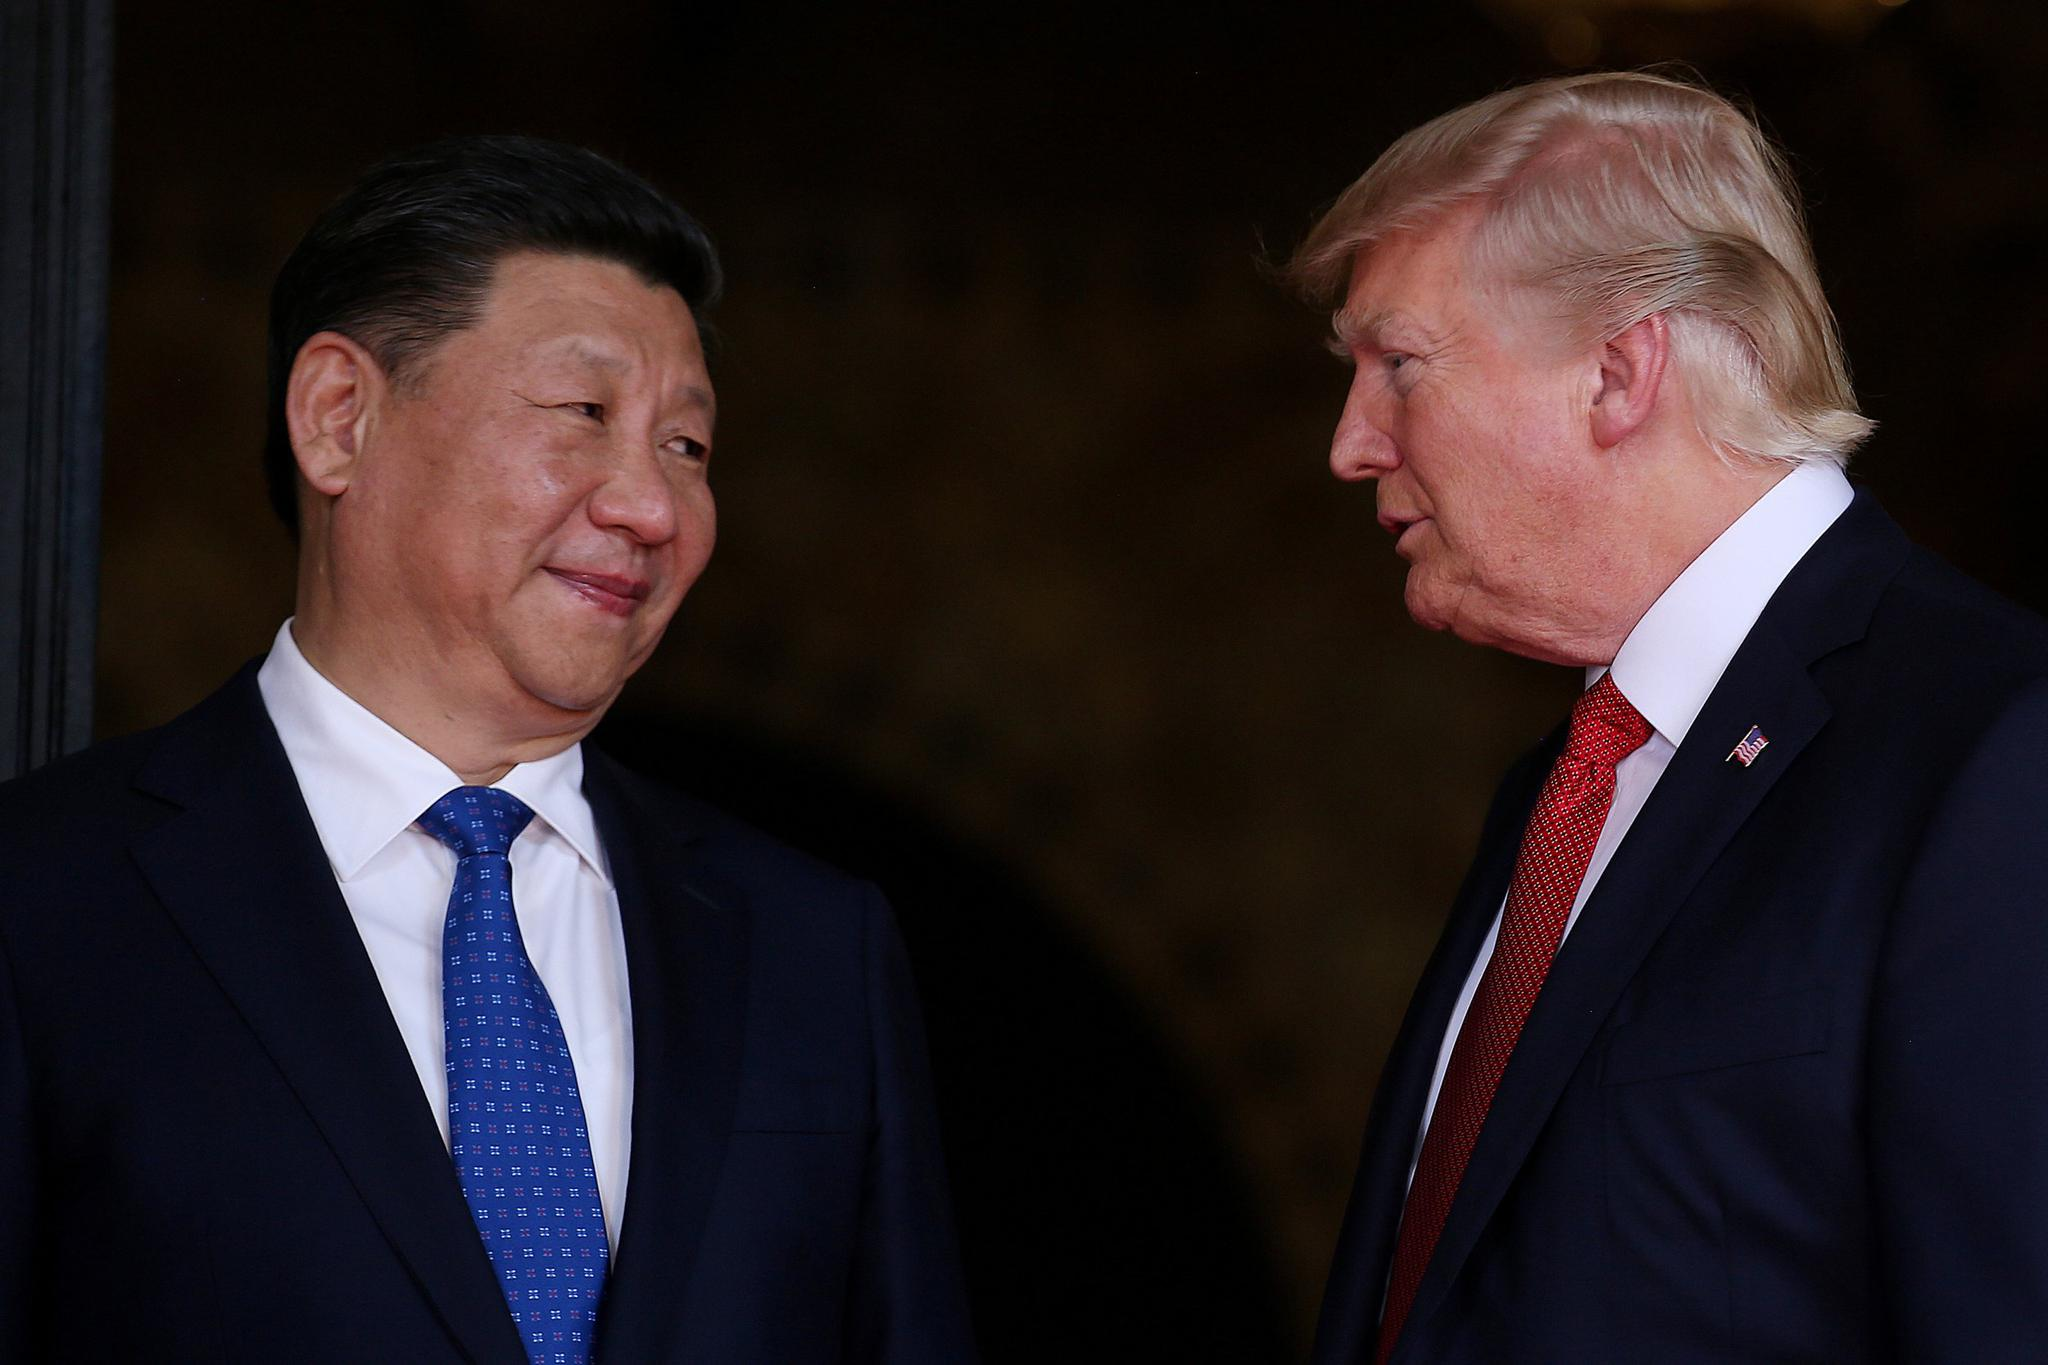 U.S. President Donald Trump welcomes Chinese President Xi Jinping at Mar-a-Lago state in Palm Beach, Florida, on April 6. A report claimed that China has killed or imprisoned multiple U.S. spies in recent years.